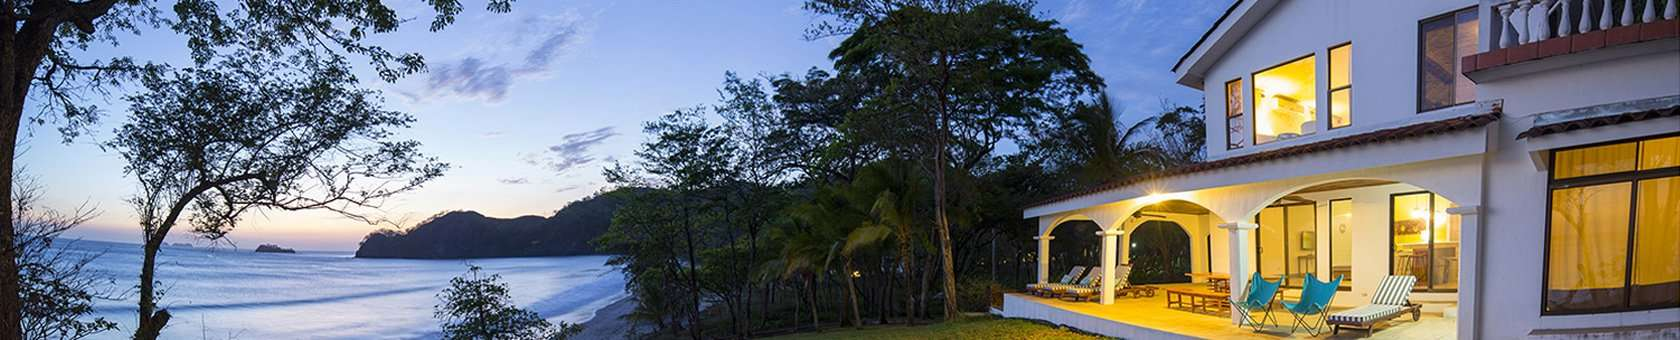 Costa Rica Retreat | Dirk Terpstra